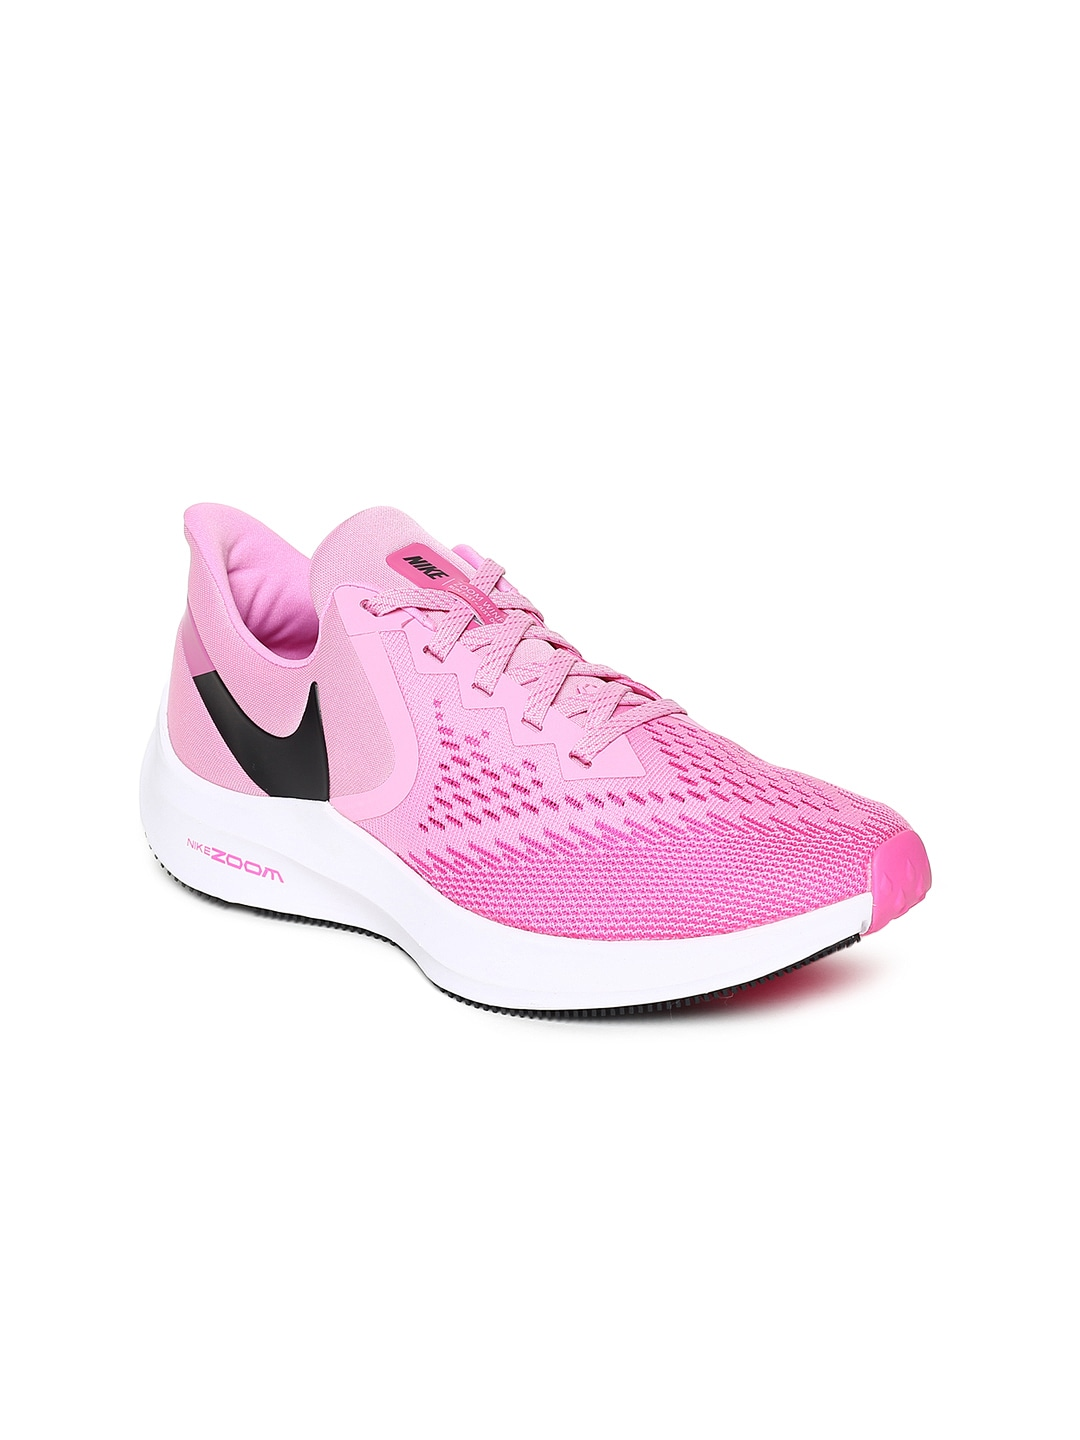 cheaper 7139a 1f7ca Nike Pink Shoes - Buy Nike Pink Shoes Online in India